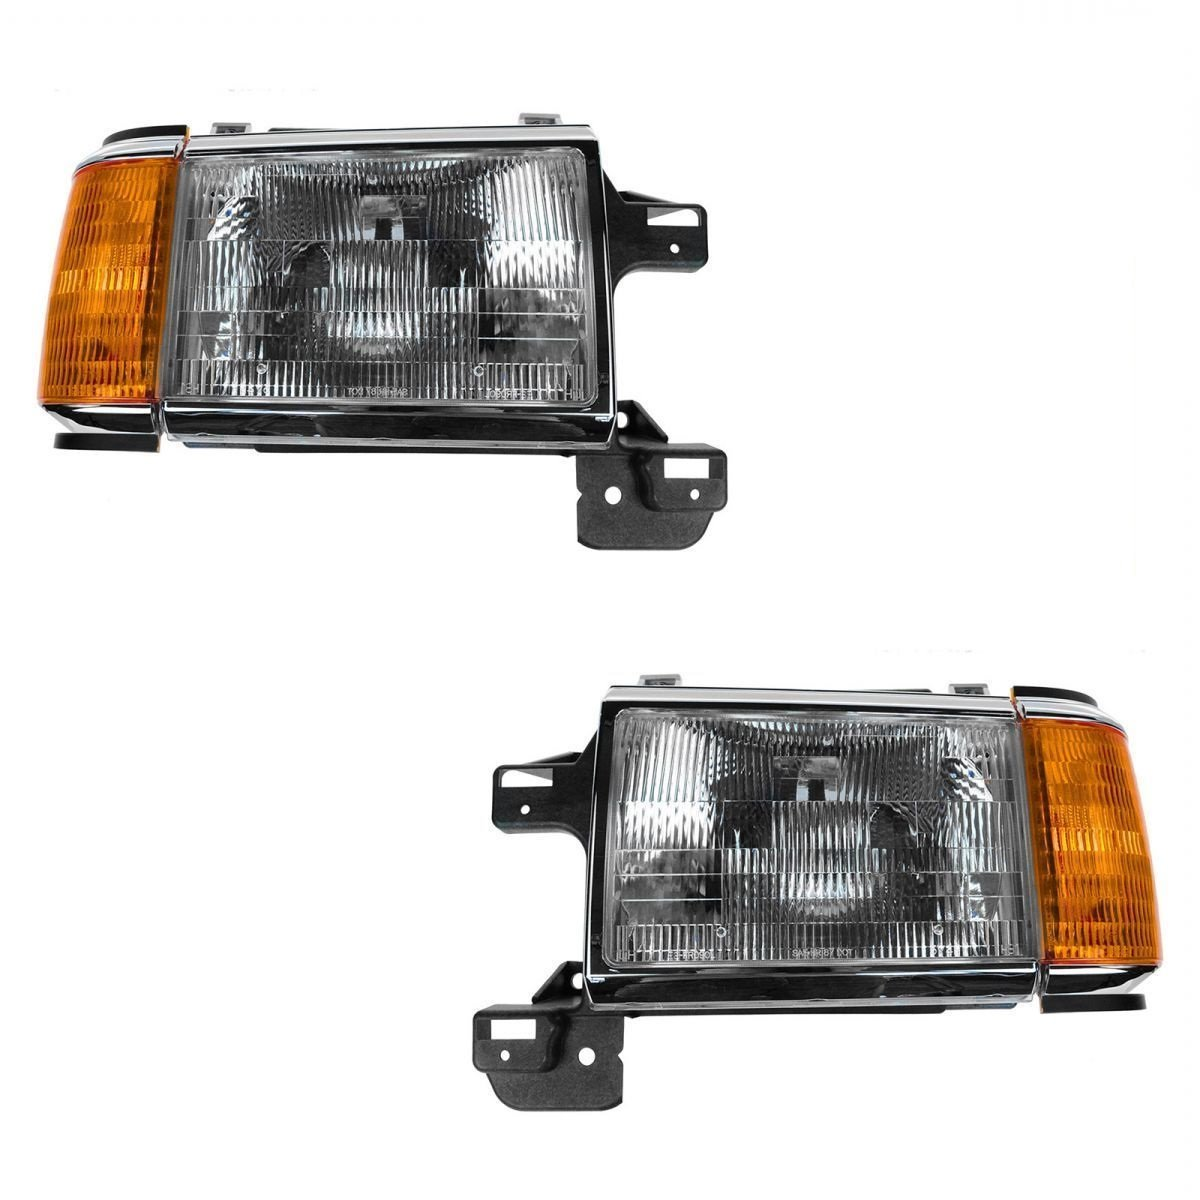 Fleetwood Bounder 1997-1999 RV Motorhome Pair (Left & Right) Replacement Front Headlights & Signal Lights by BuyRVlights (Image #1)